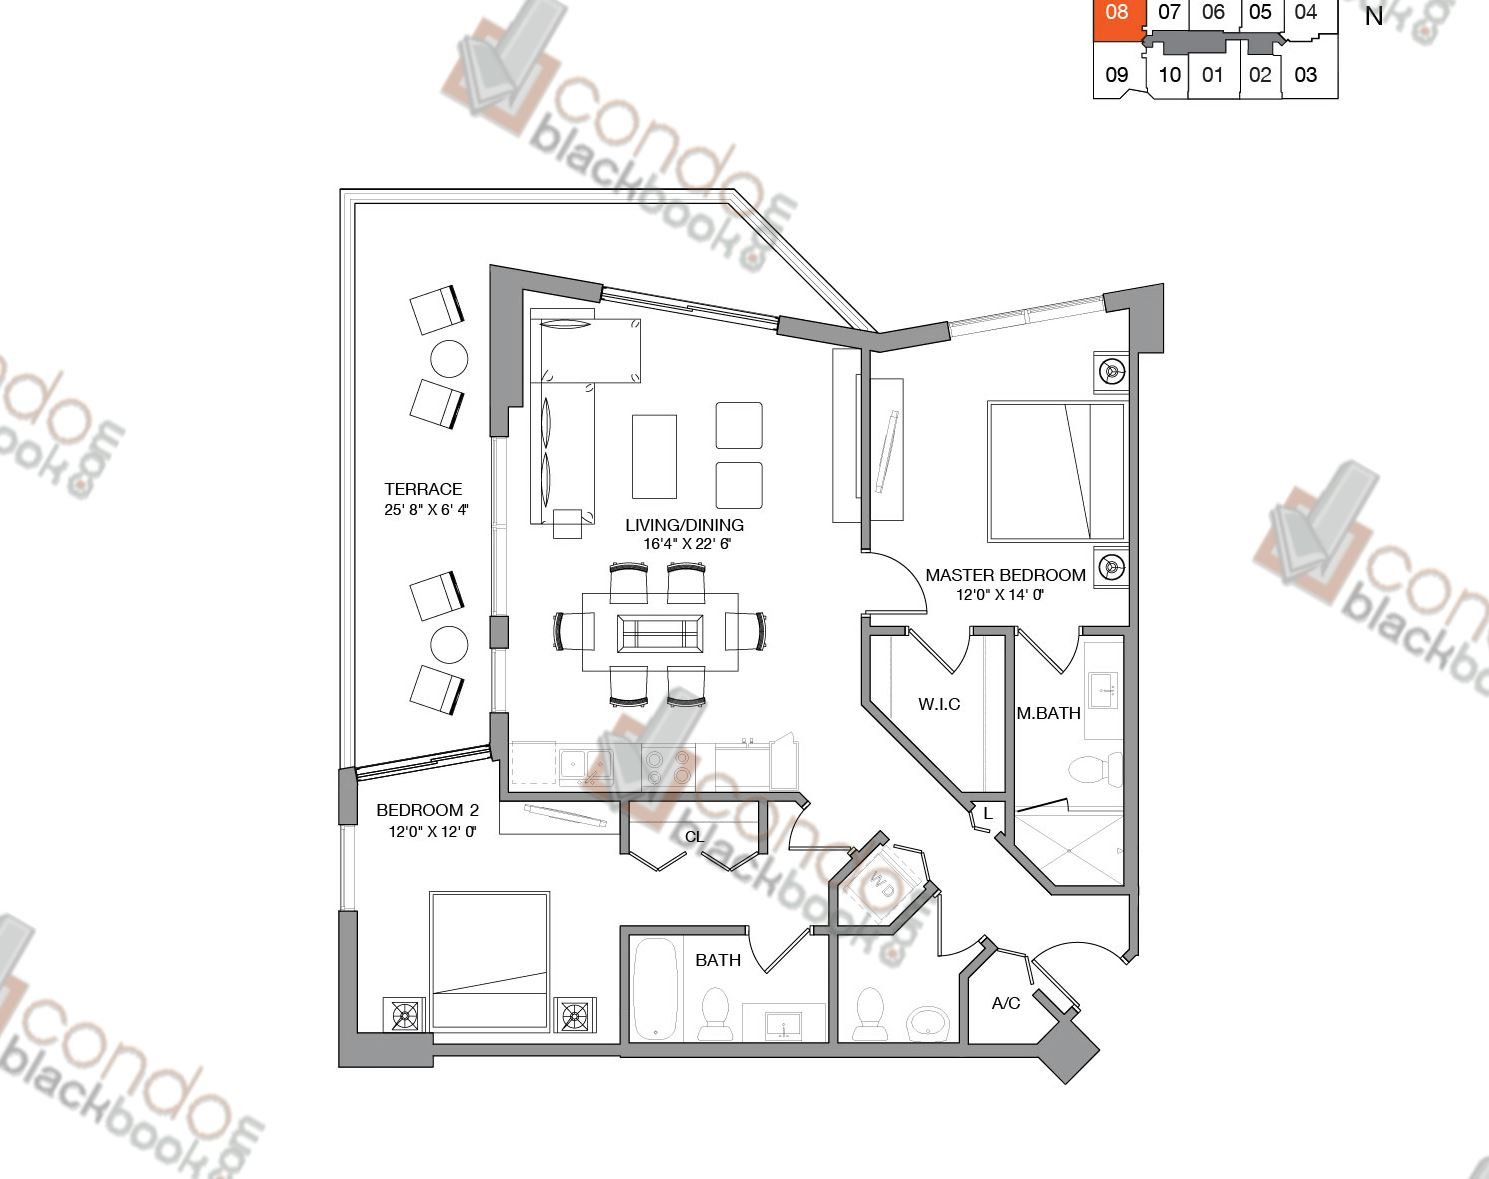 Floor plan for Brickell Ten Brickell Miami, model Residence Eight, line 08, 2/2.5 bedrooms, 1,111 sq ft